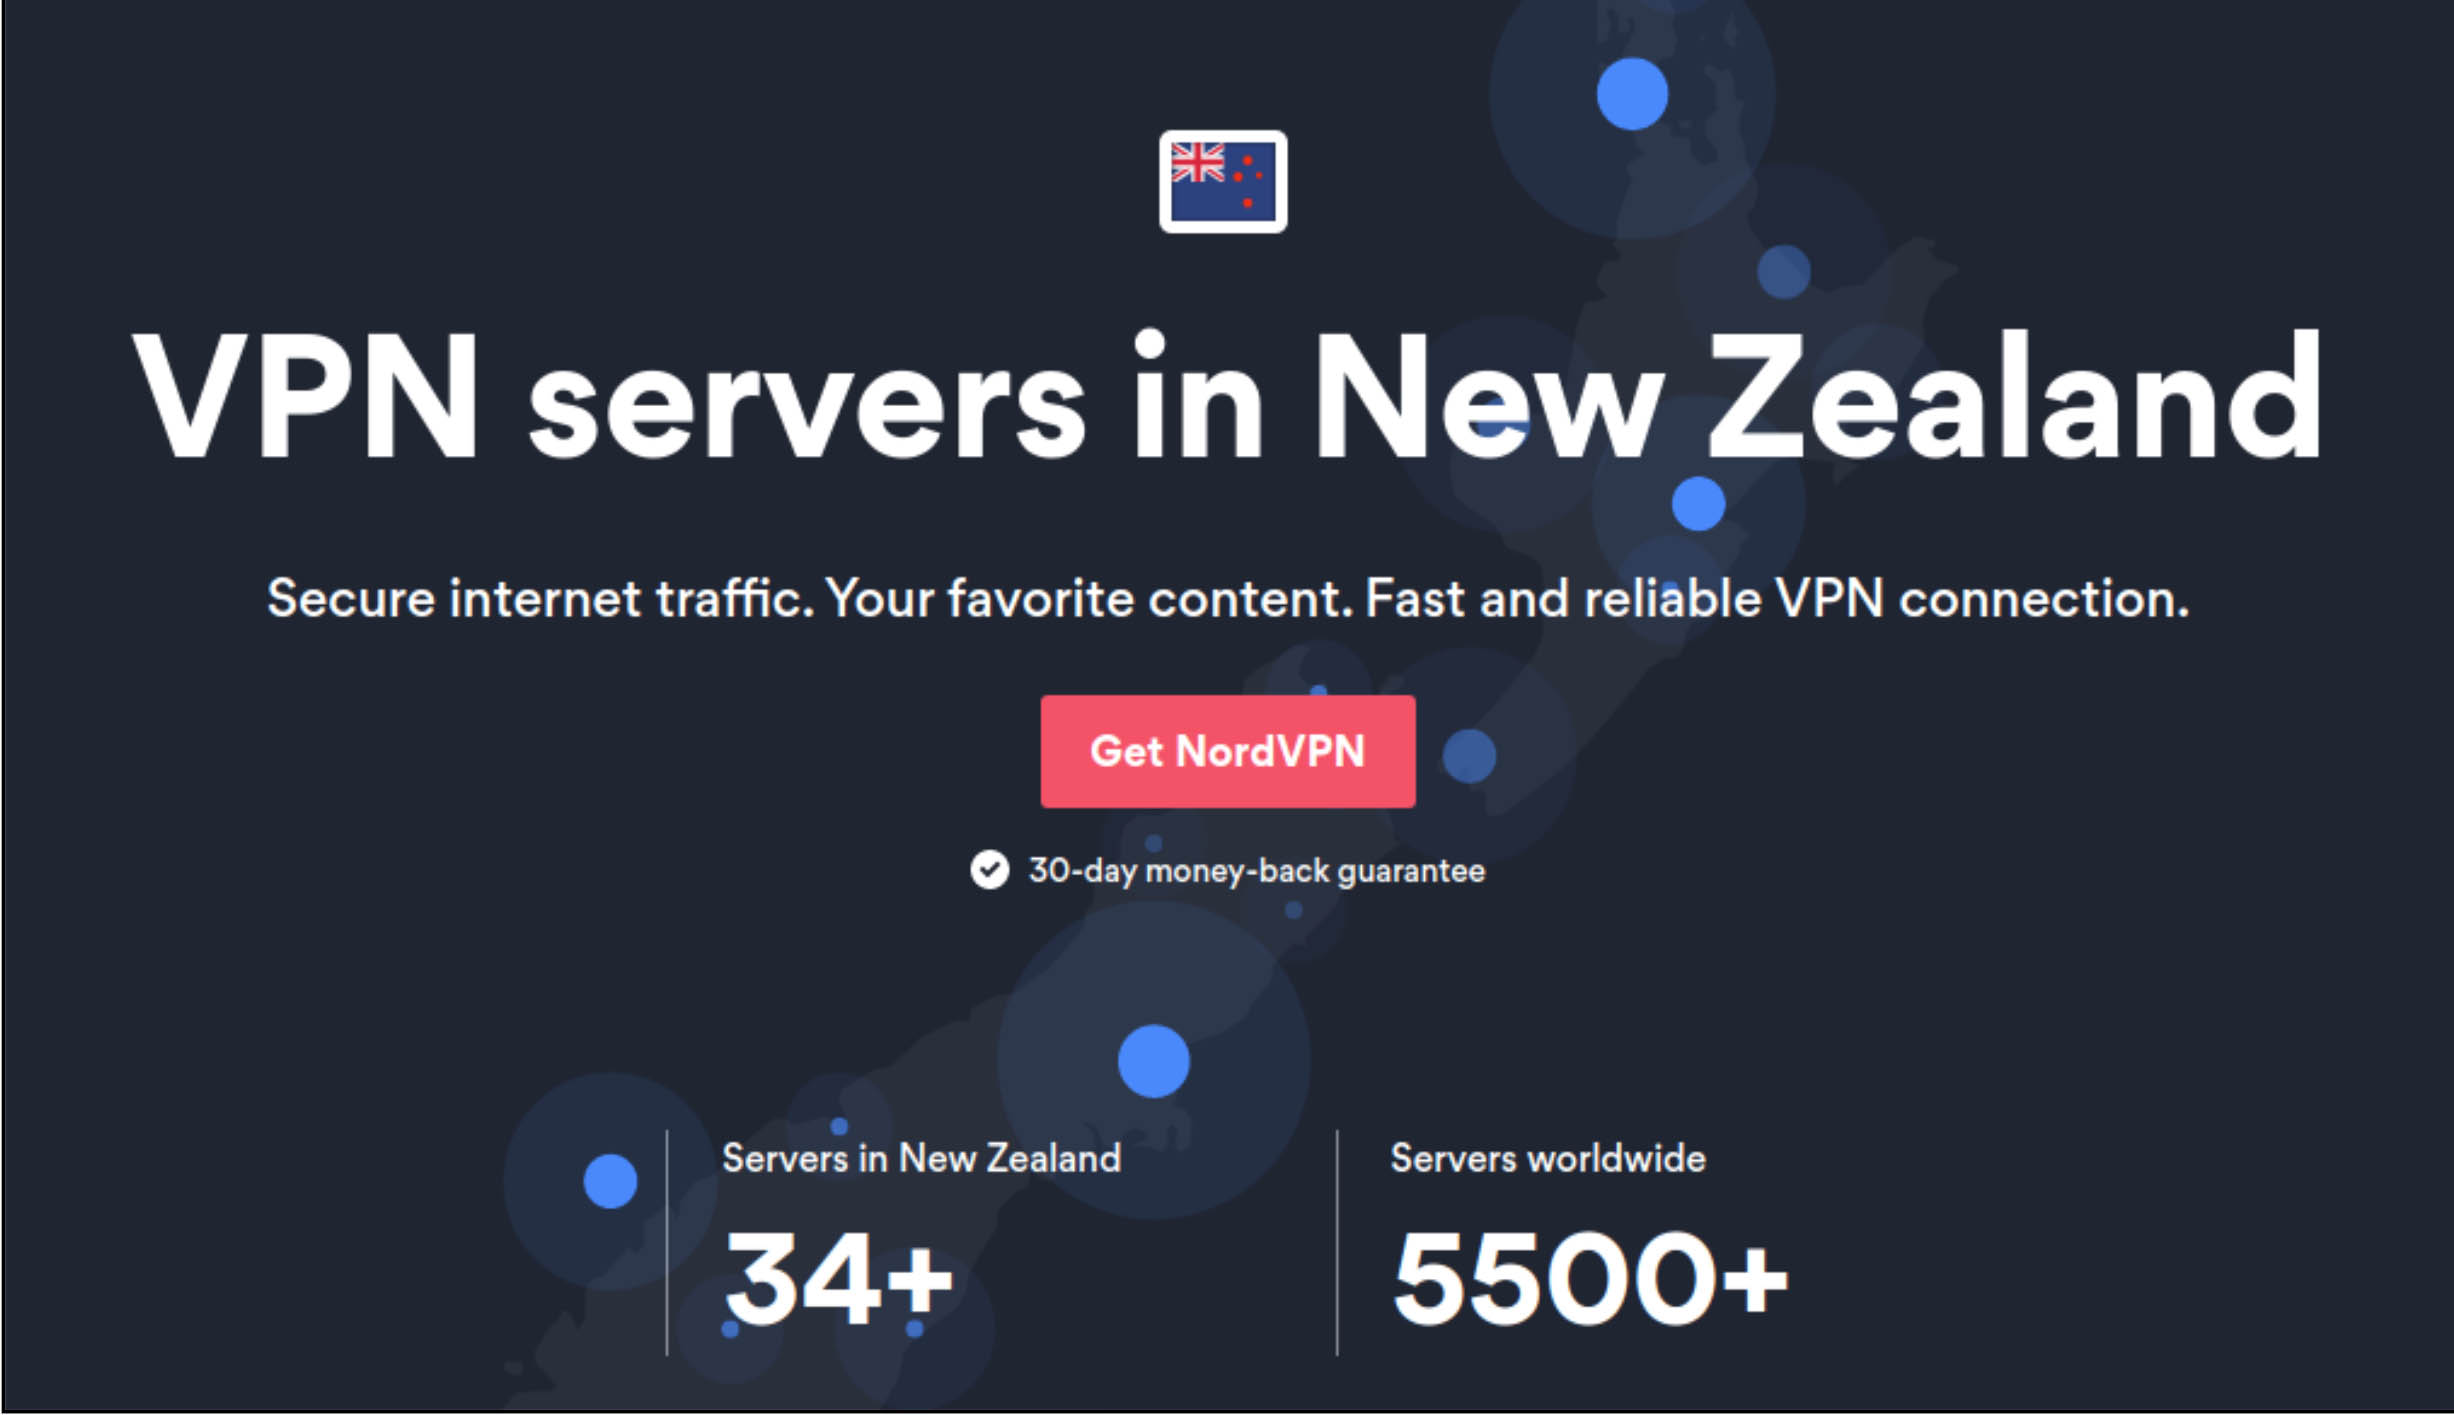 Screenshot of NordVPN's vendor welcome page for its New Zealand VPN service with product information and purchasing links.